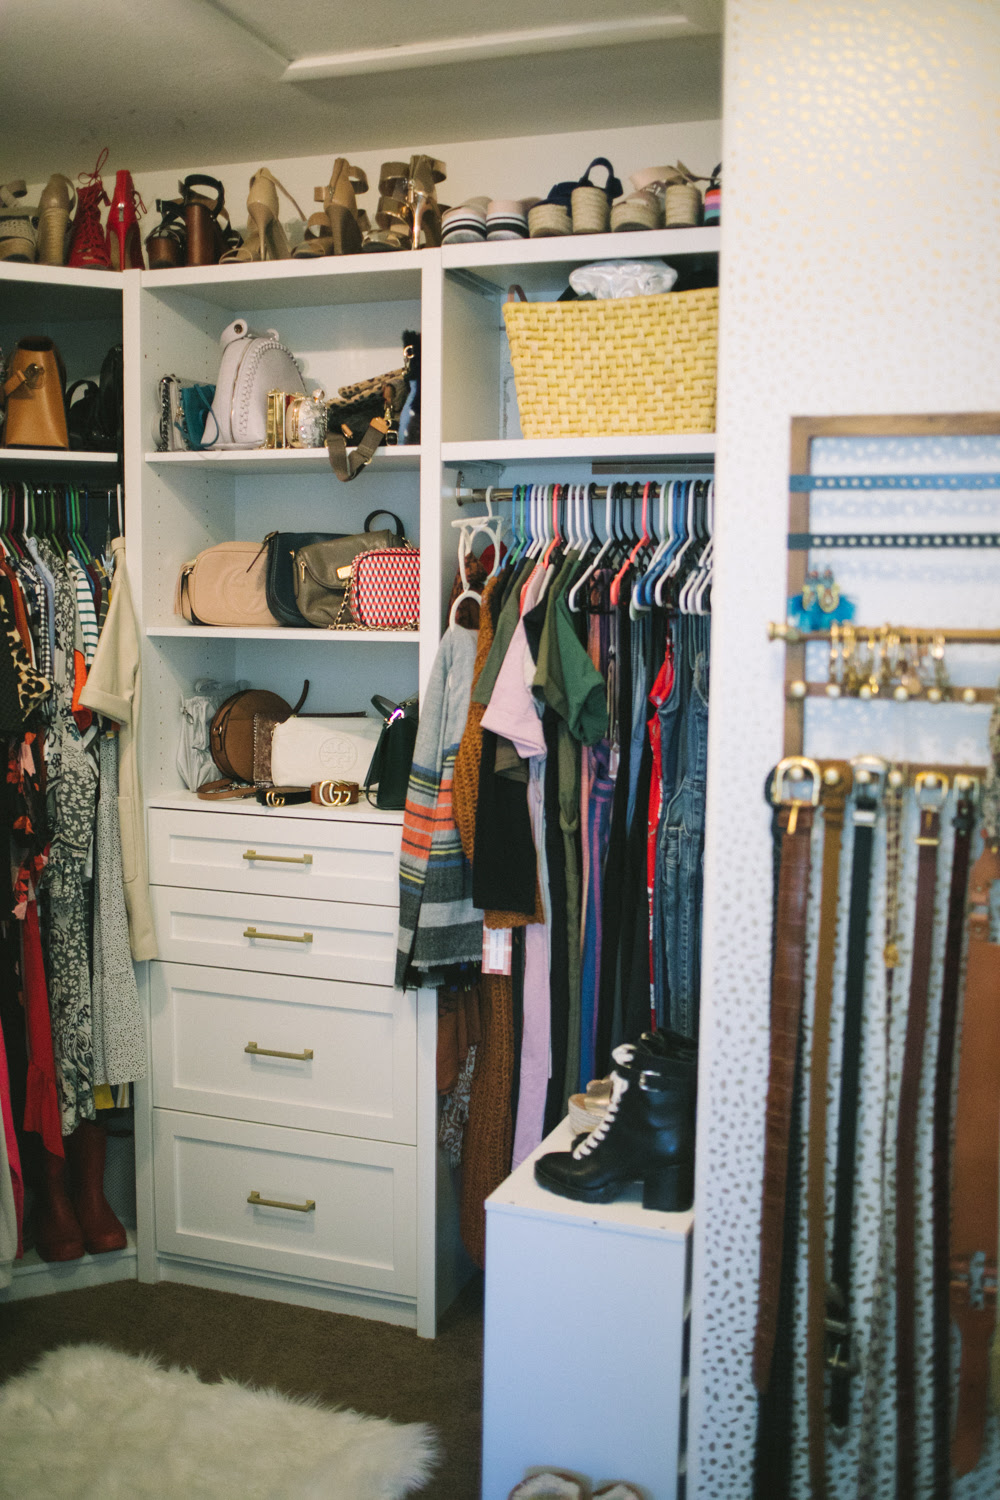 The Latest Closet Renovation Ideas with ClosetMaid — Life of a Sister